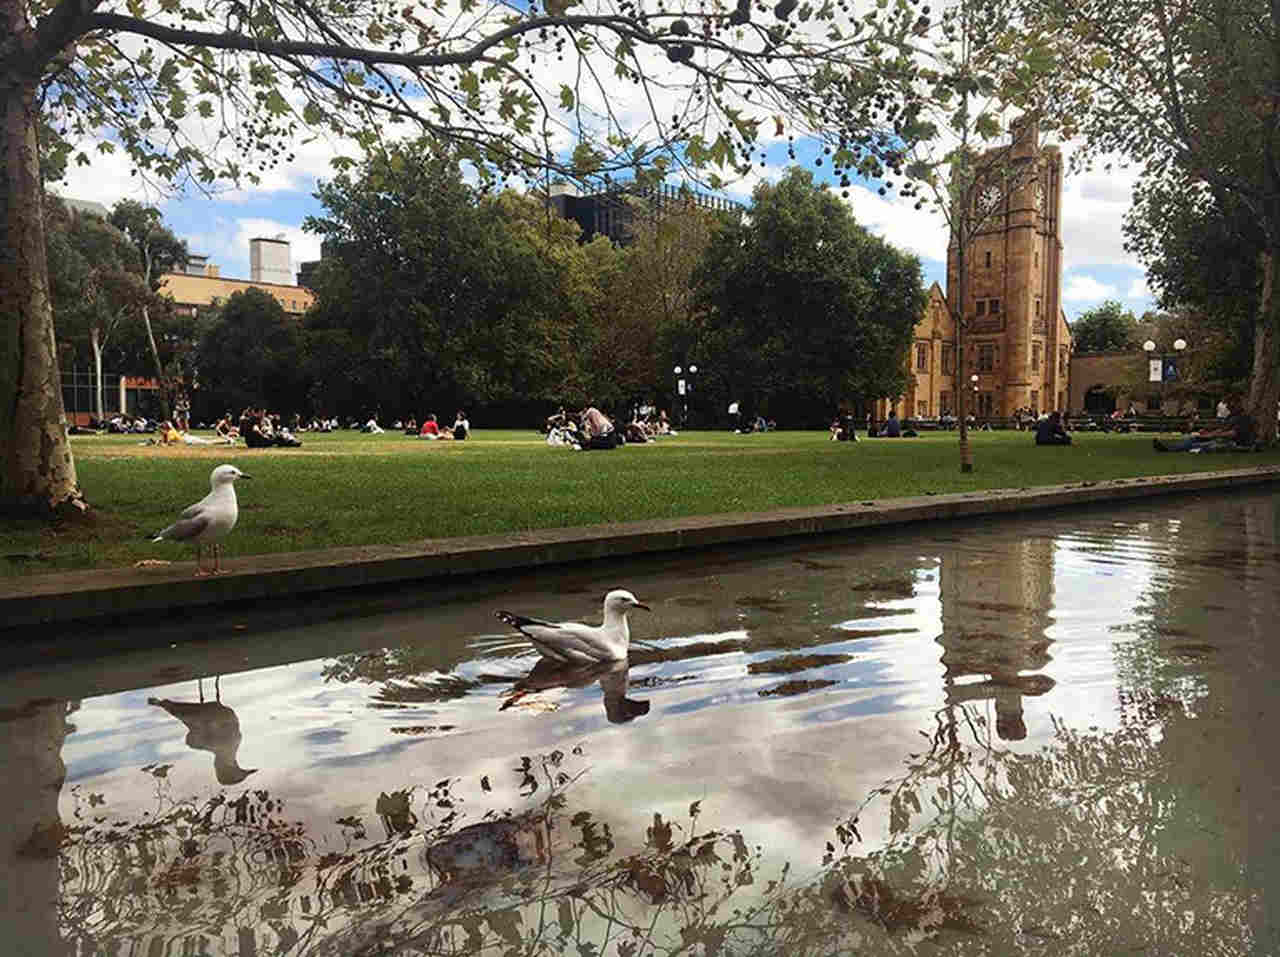 Pond, Tree, Water, Reflecting pool, Reflection, Grass, Waterway, Public space, Bank, Park, Botany, Duck, Bird, Water bird, Spring, River, City, Plant, Lake, University of Melbourne